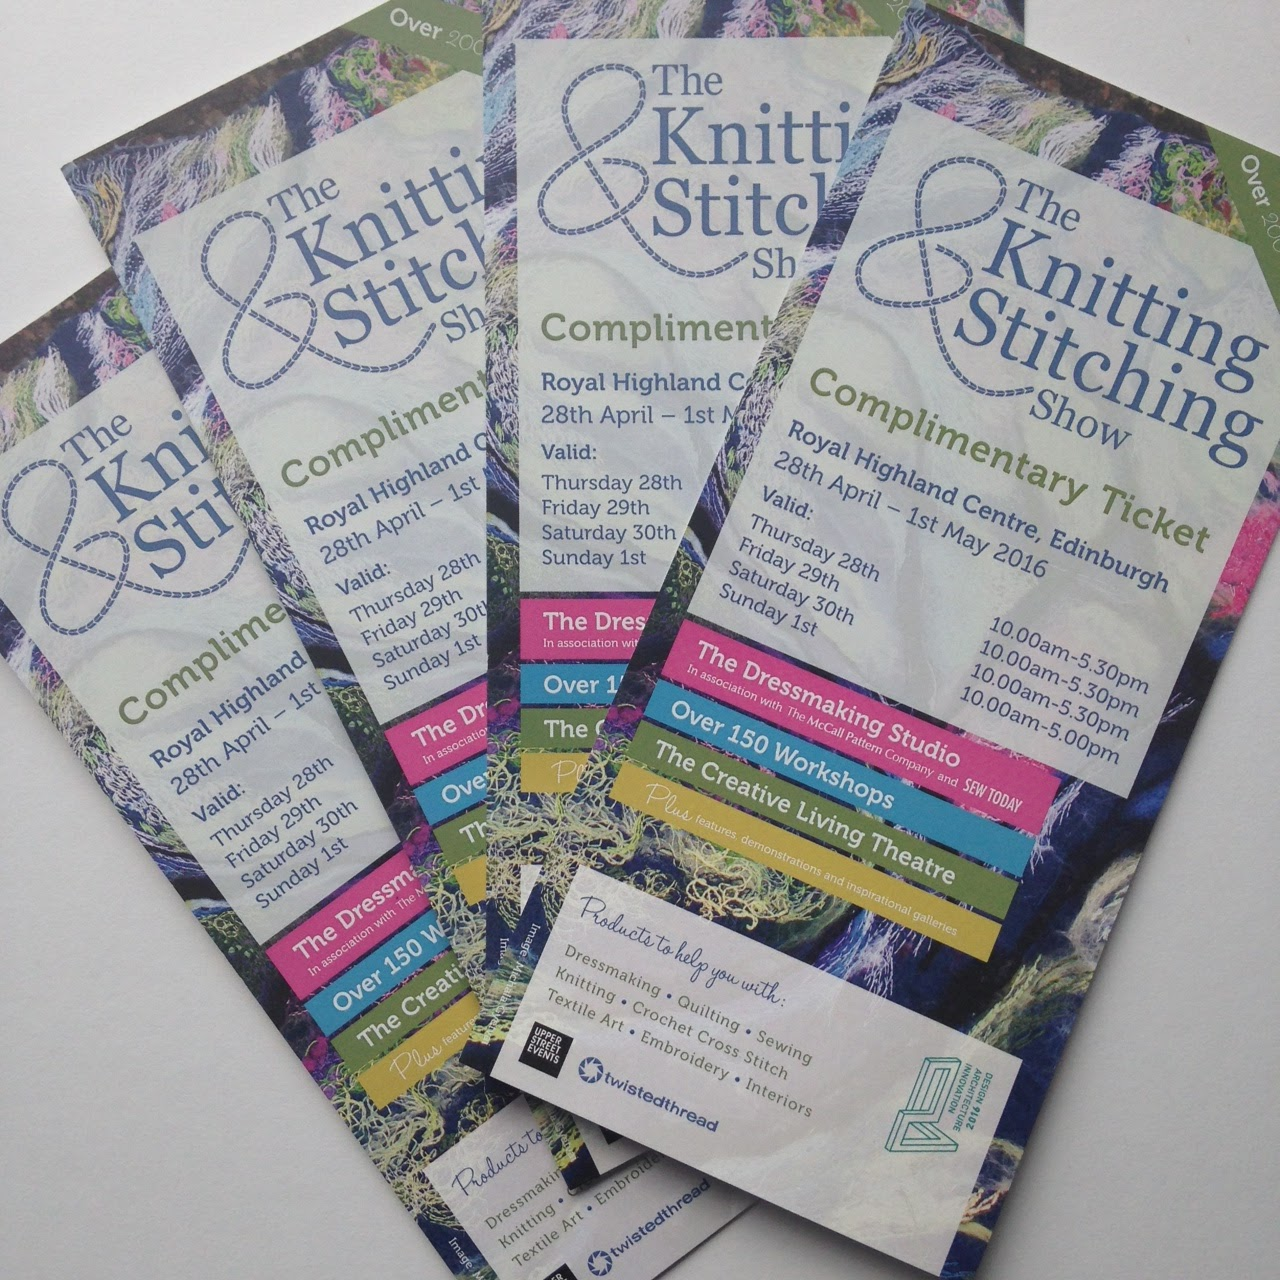 Knit And Stitch Show Tickets : myBearpaw: Knitting and Stitching Show Edinburgh ticket GIVEAWAY!